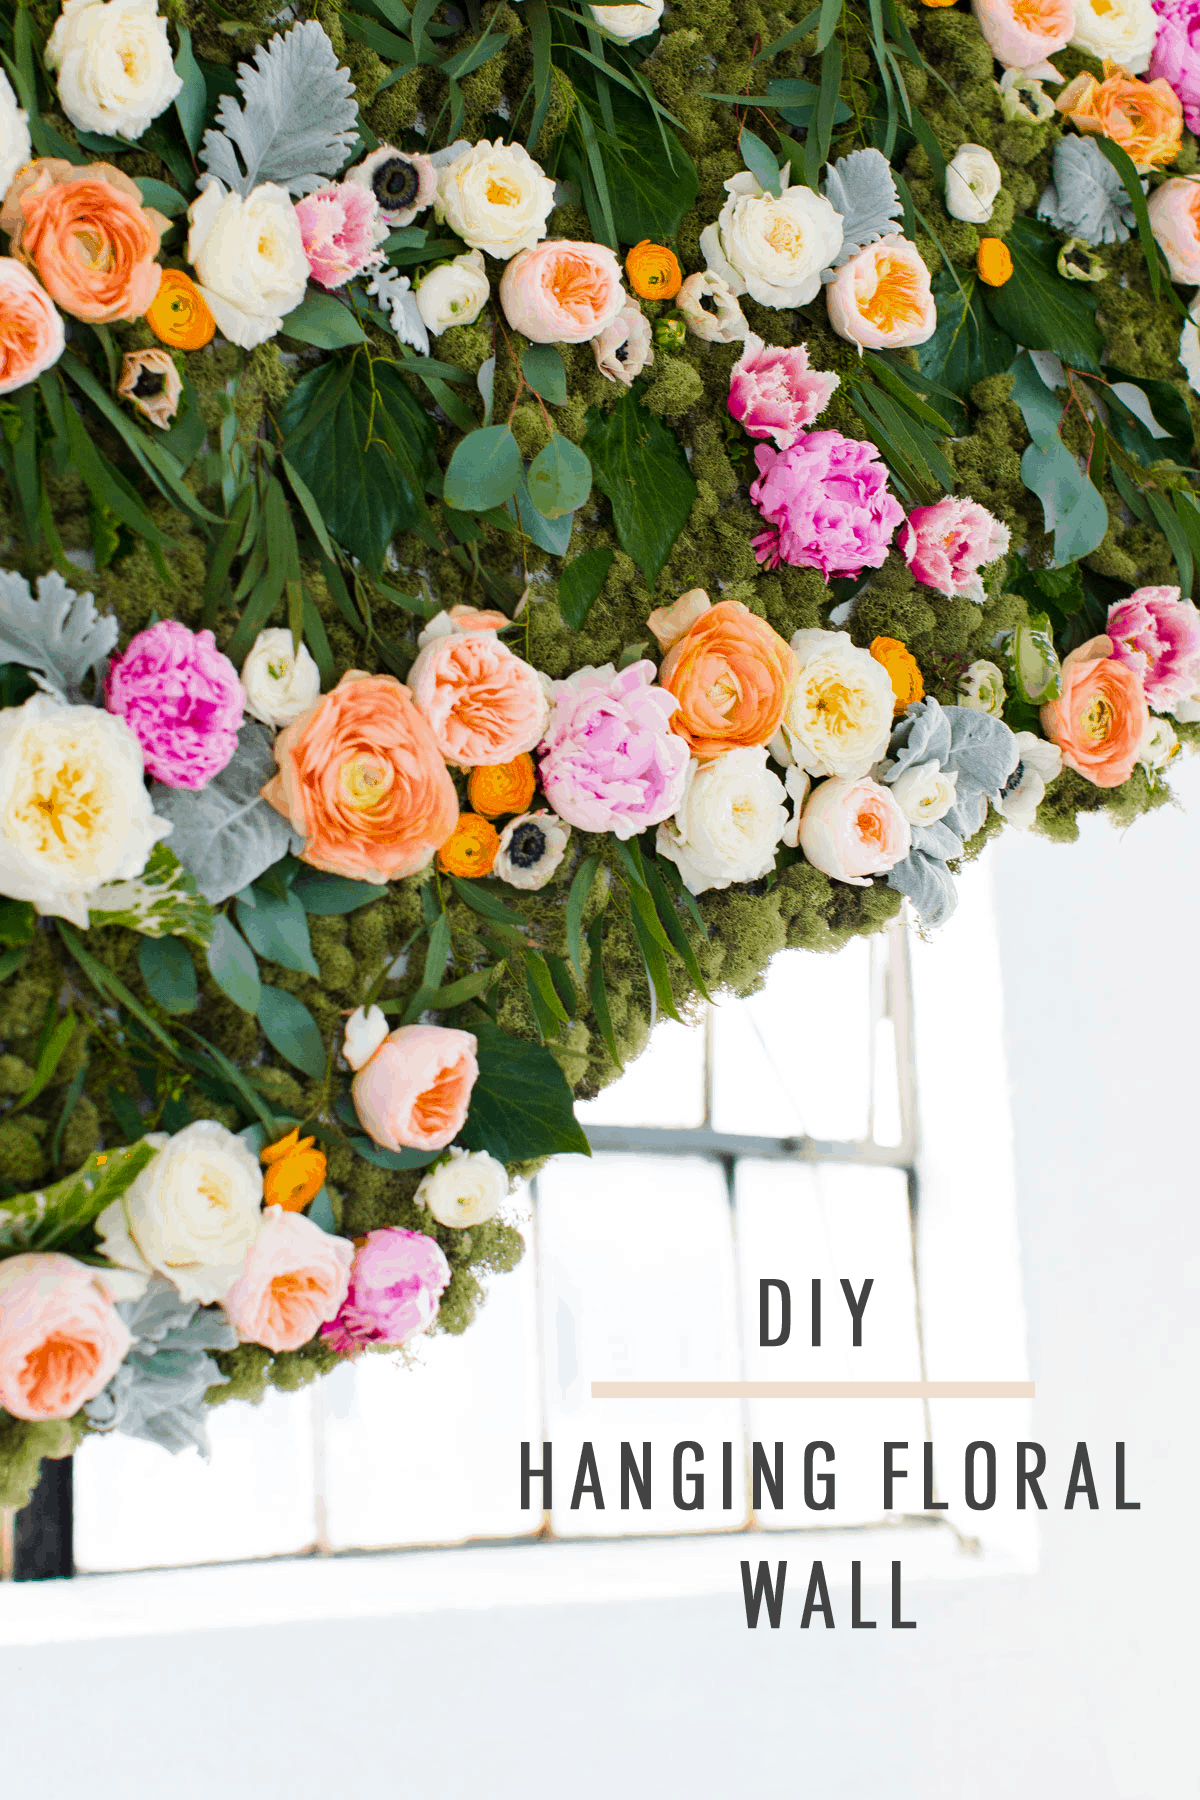 DIY Hanging Flower Wall Installation by Top Houston Lifestyle Blogger Ashley Rose of Sugar & Cloth | #diy #flowerwall #wallhanging #flower #floral #diydecor #backdrop